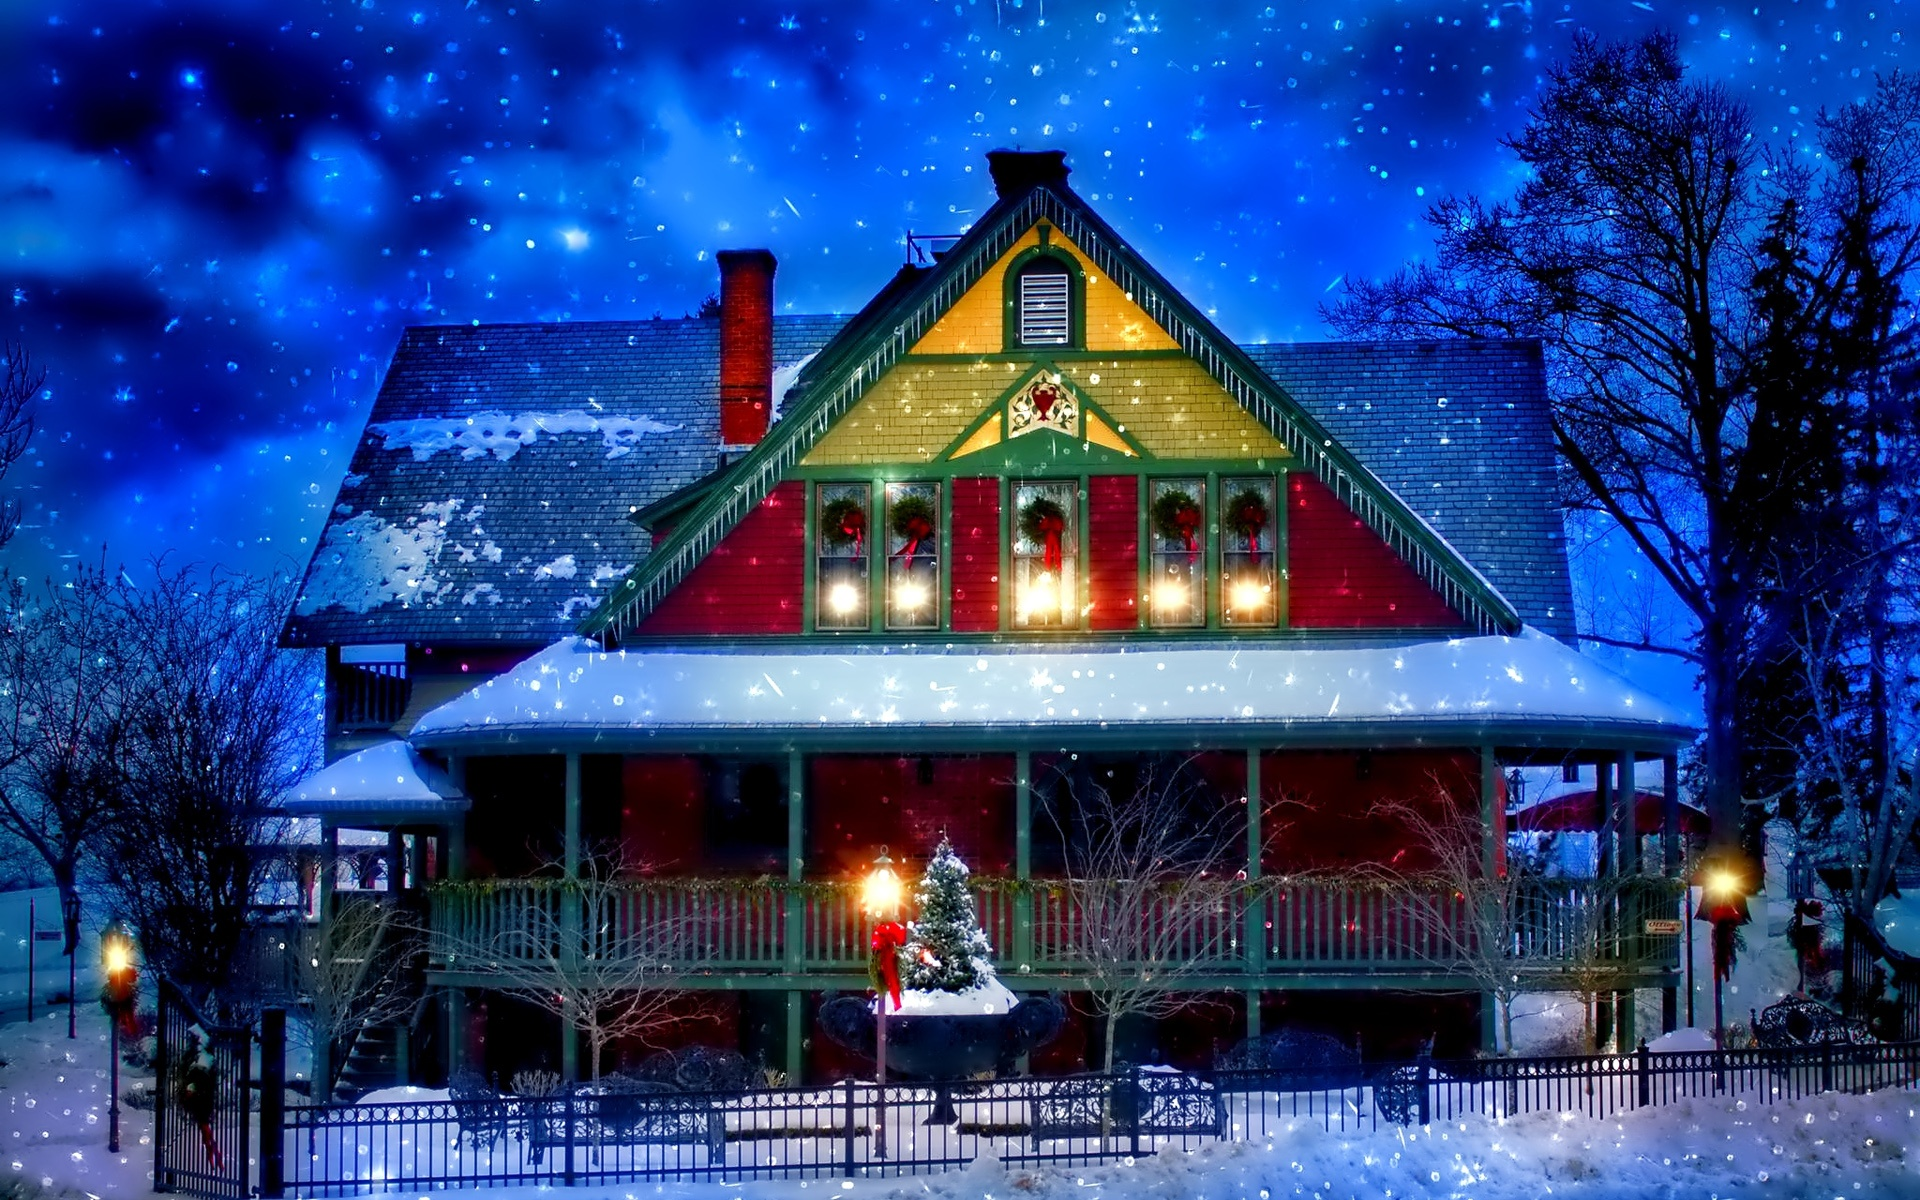 Wallpaper Snow Winter House New Year Christmas Lights Trees